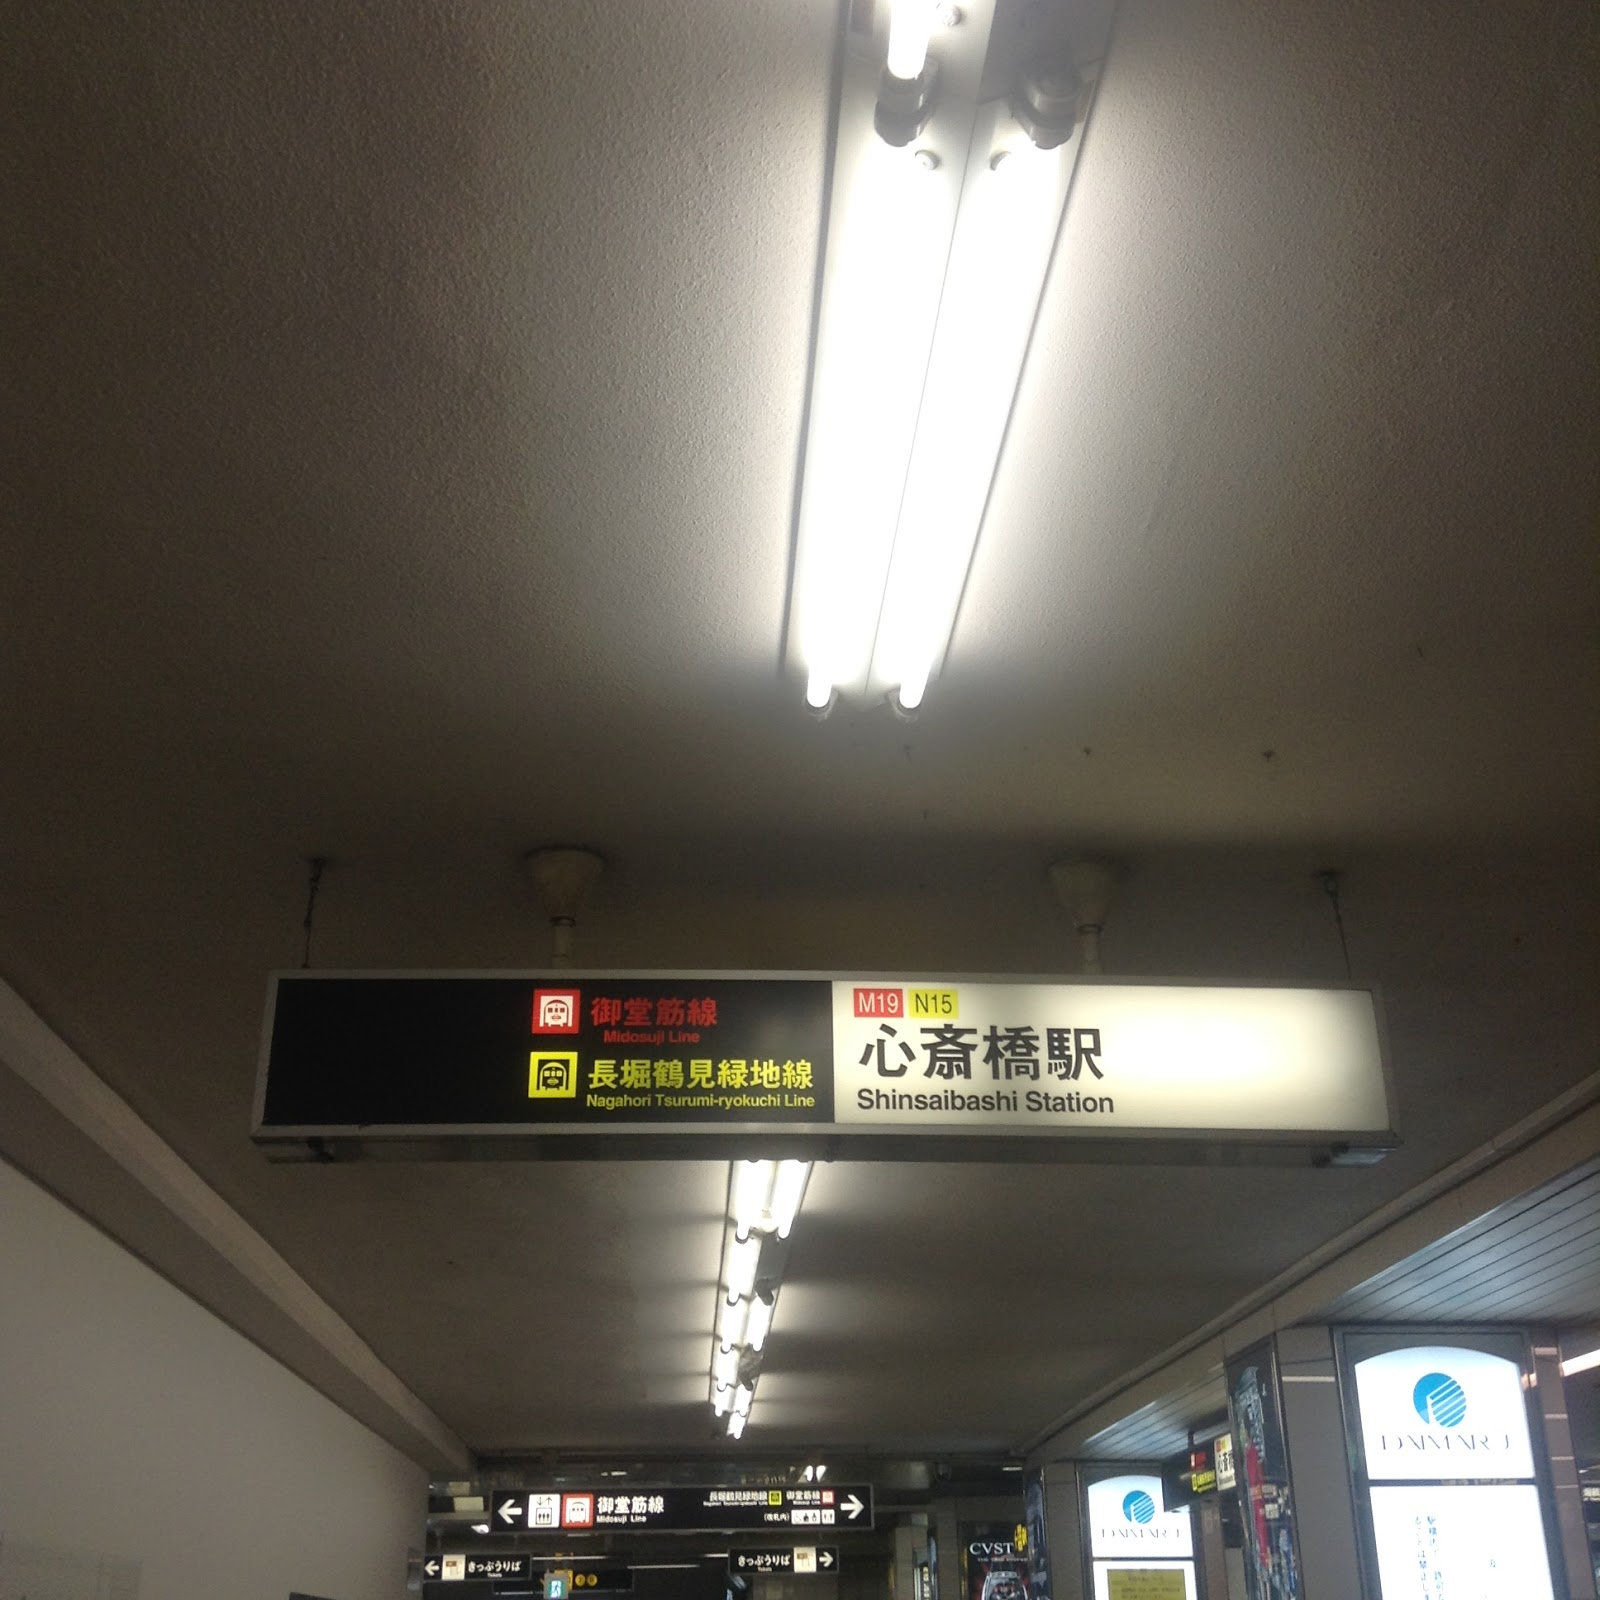 Shinsaibashi station